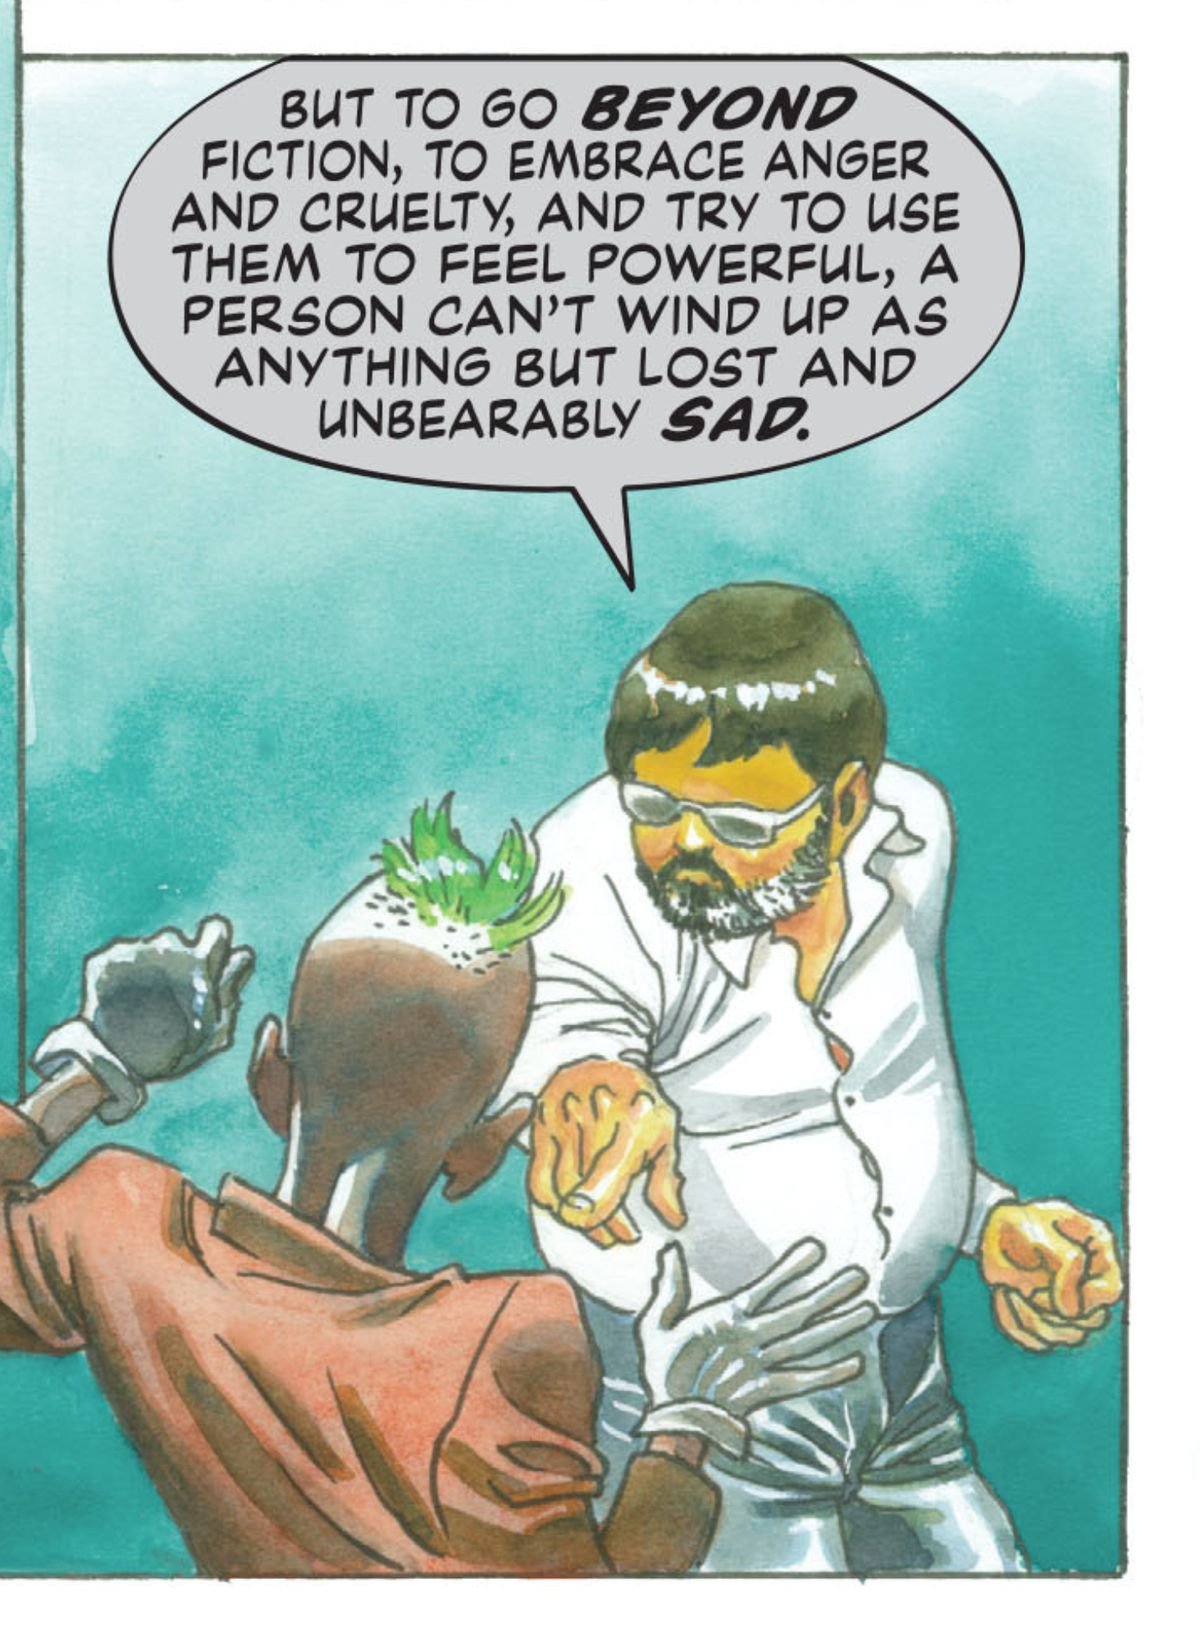 """""""But to go beyond fiction, to embrace anger and cruelty, and try to use them to feel powerful, a person can't wind up as anything but lost and unbearably sad,"""" says Paul Dini to the Joker in Dark Night: A True Batman Story, DC Comics (2016)."""